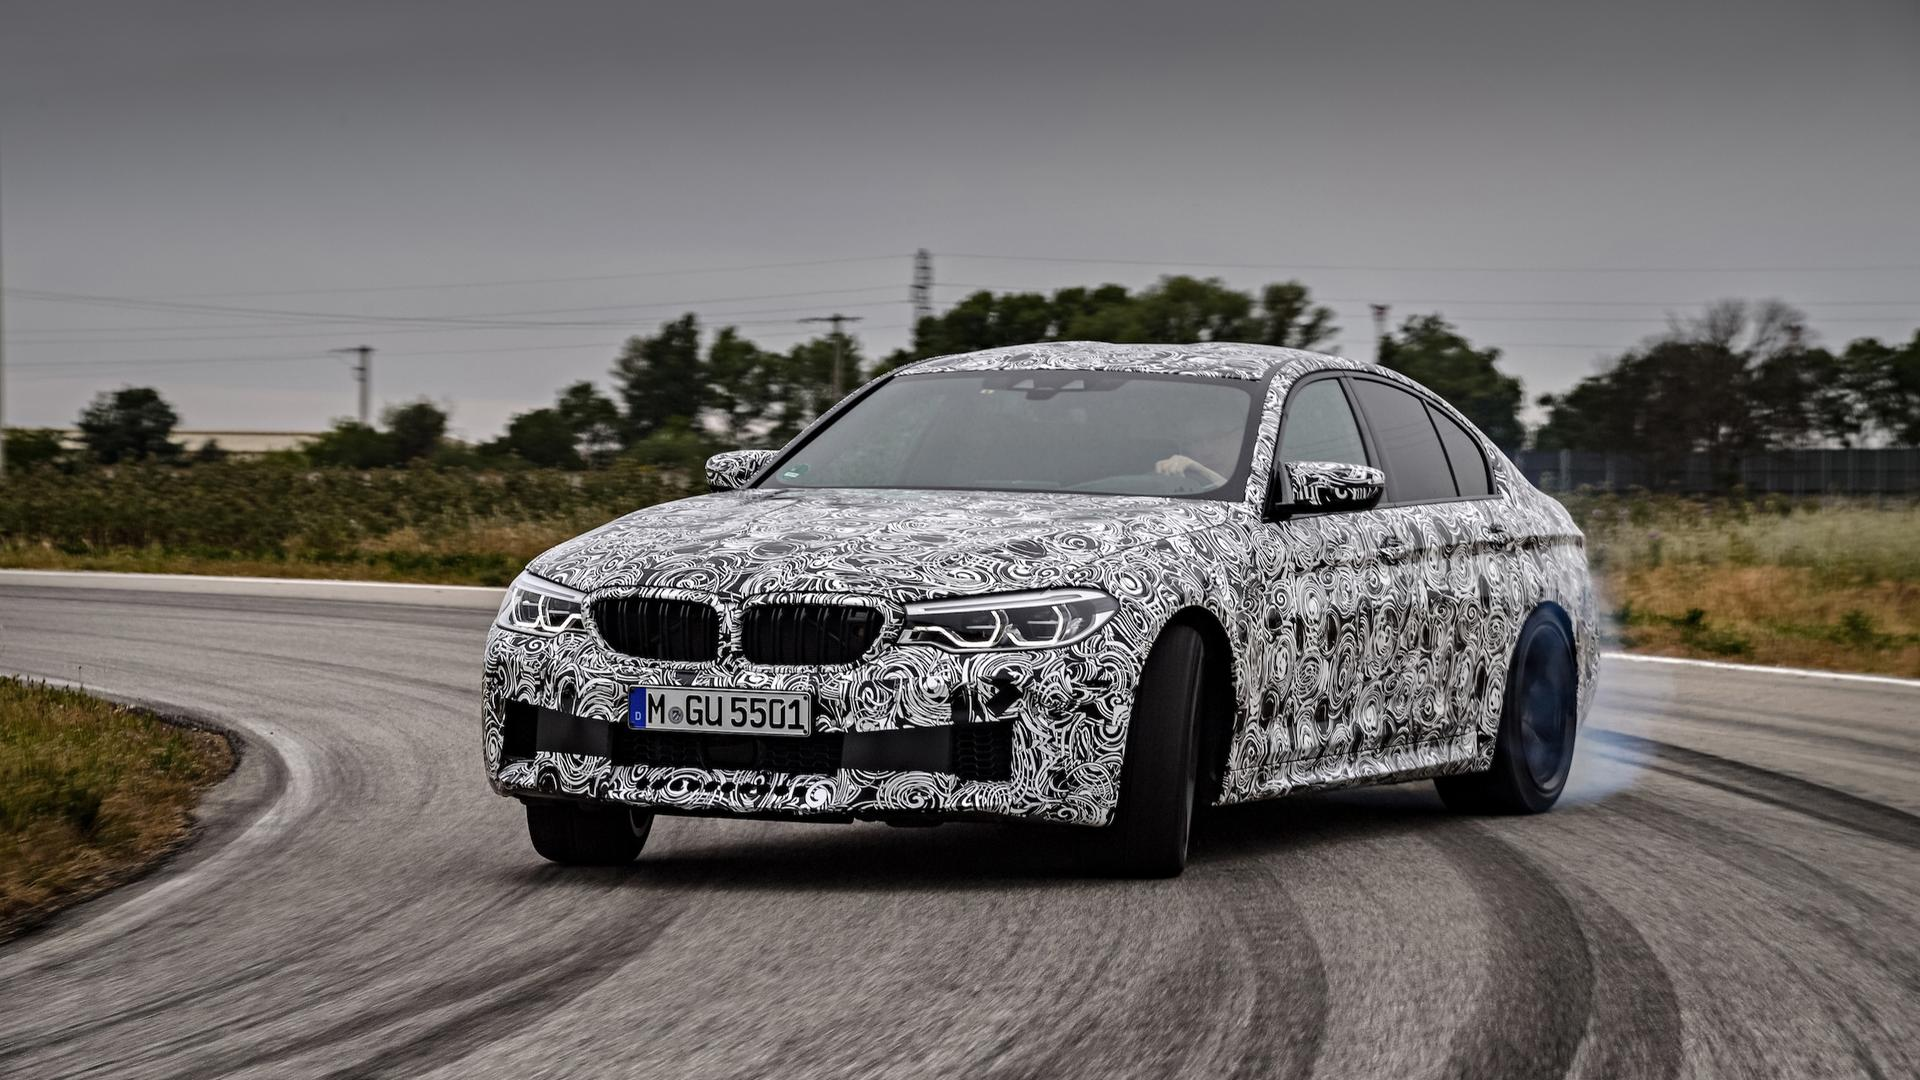 bmw confirms m xdrive 4 4 liter twin turbo v8 8 speed automatic for f90 m5 autoevolution. Black Bedroom Furniture Sets. Home Design Ideas